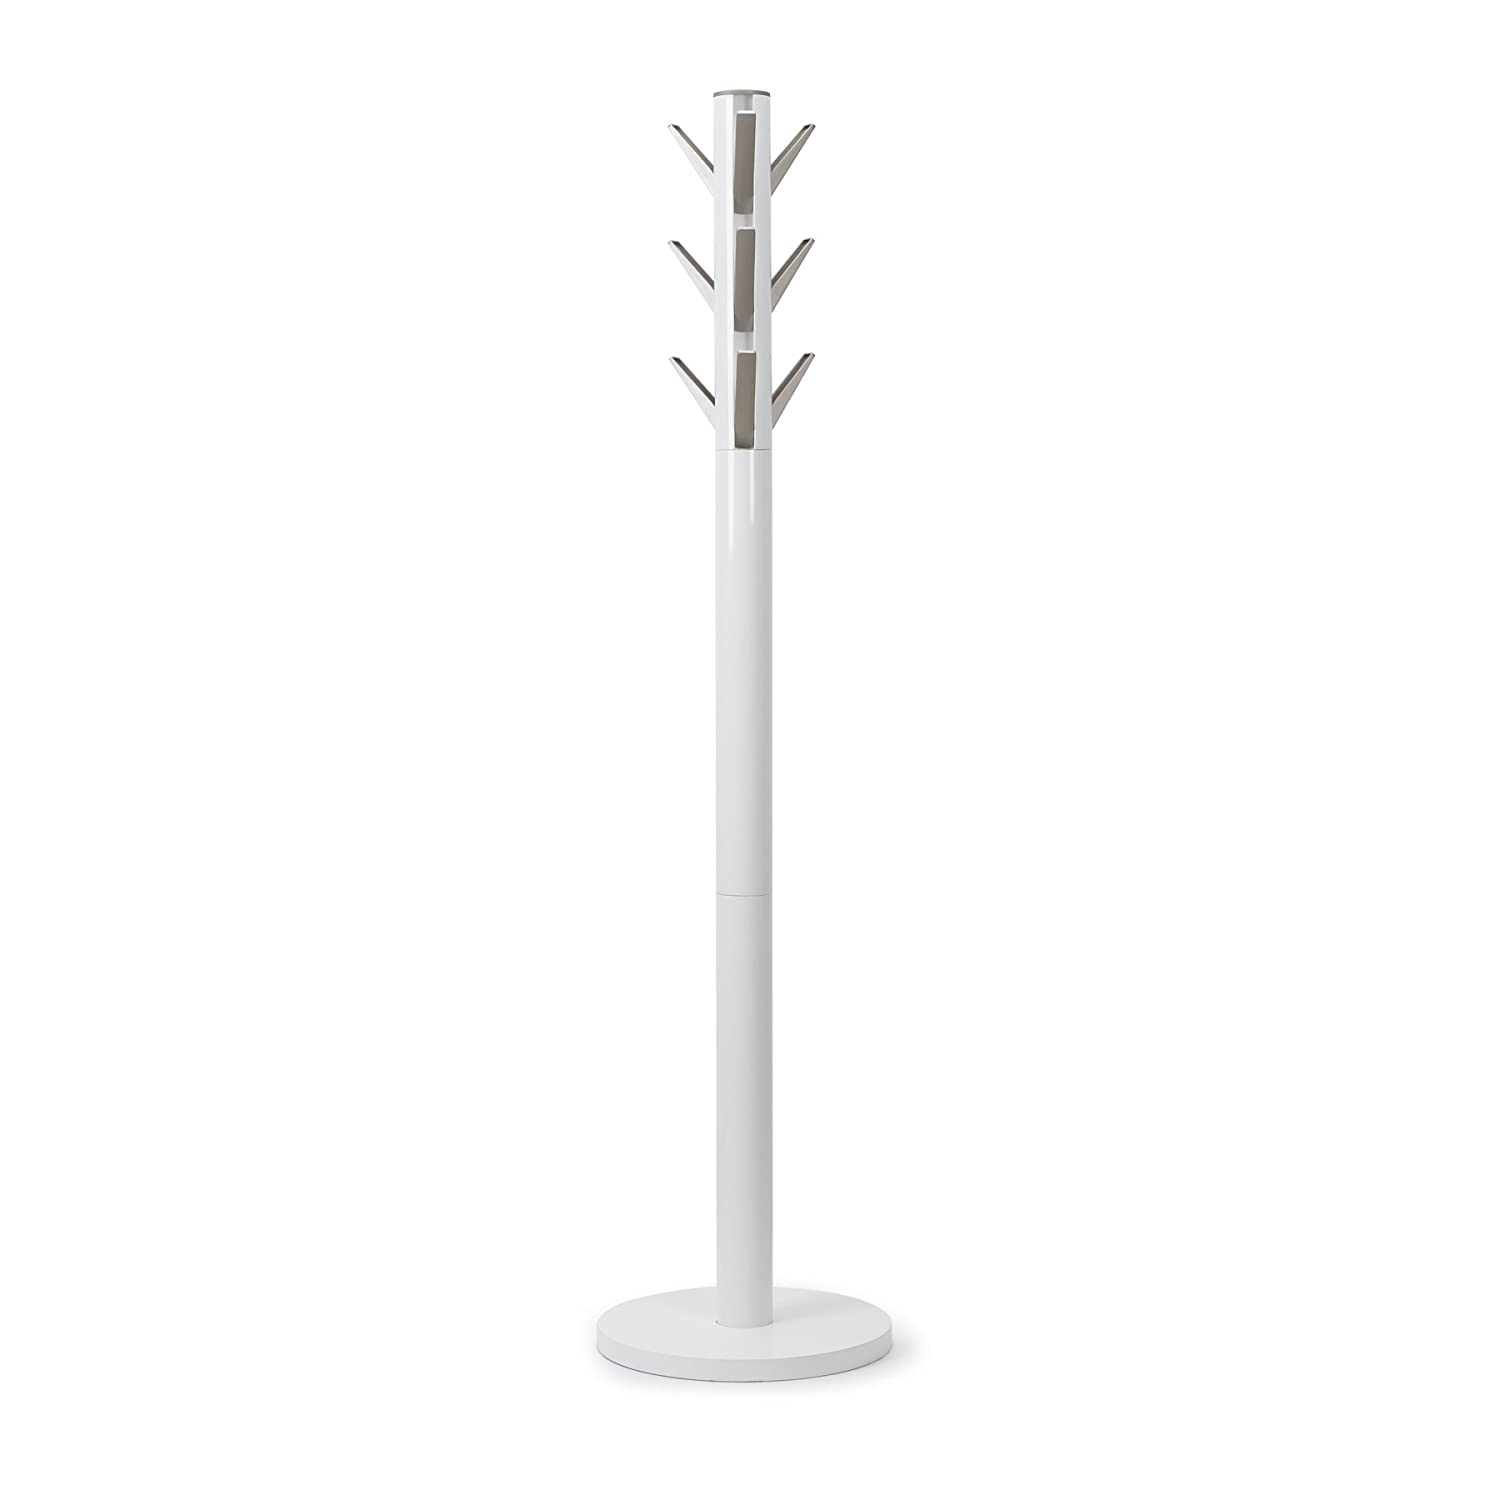 Porte-manteaux Tree White